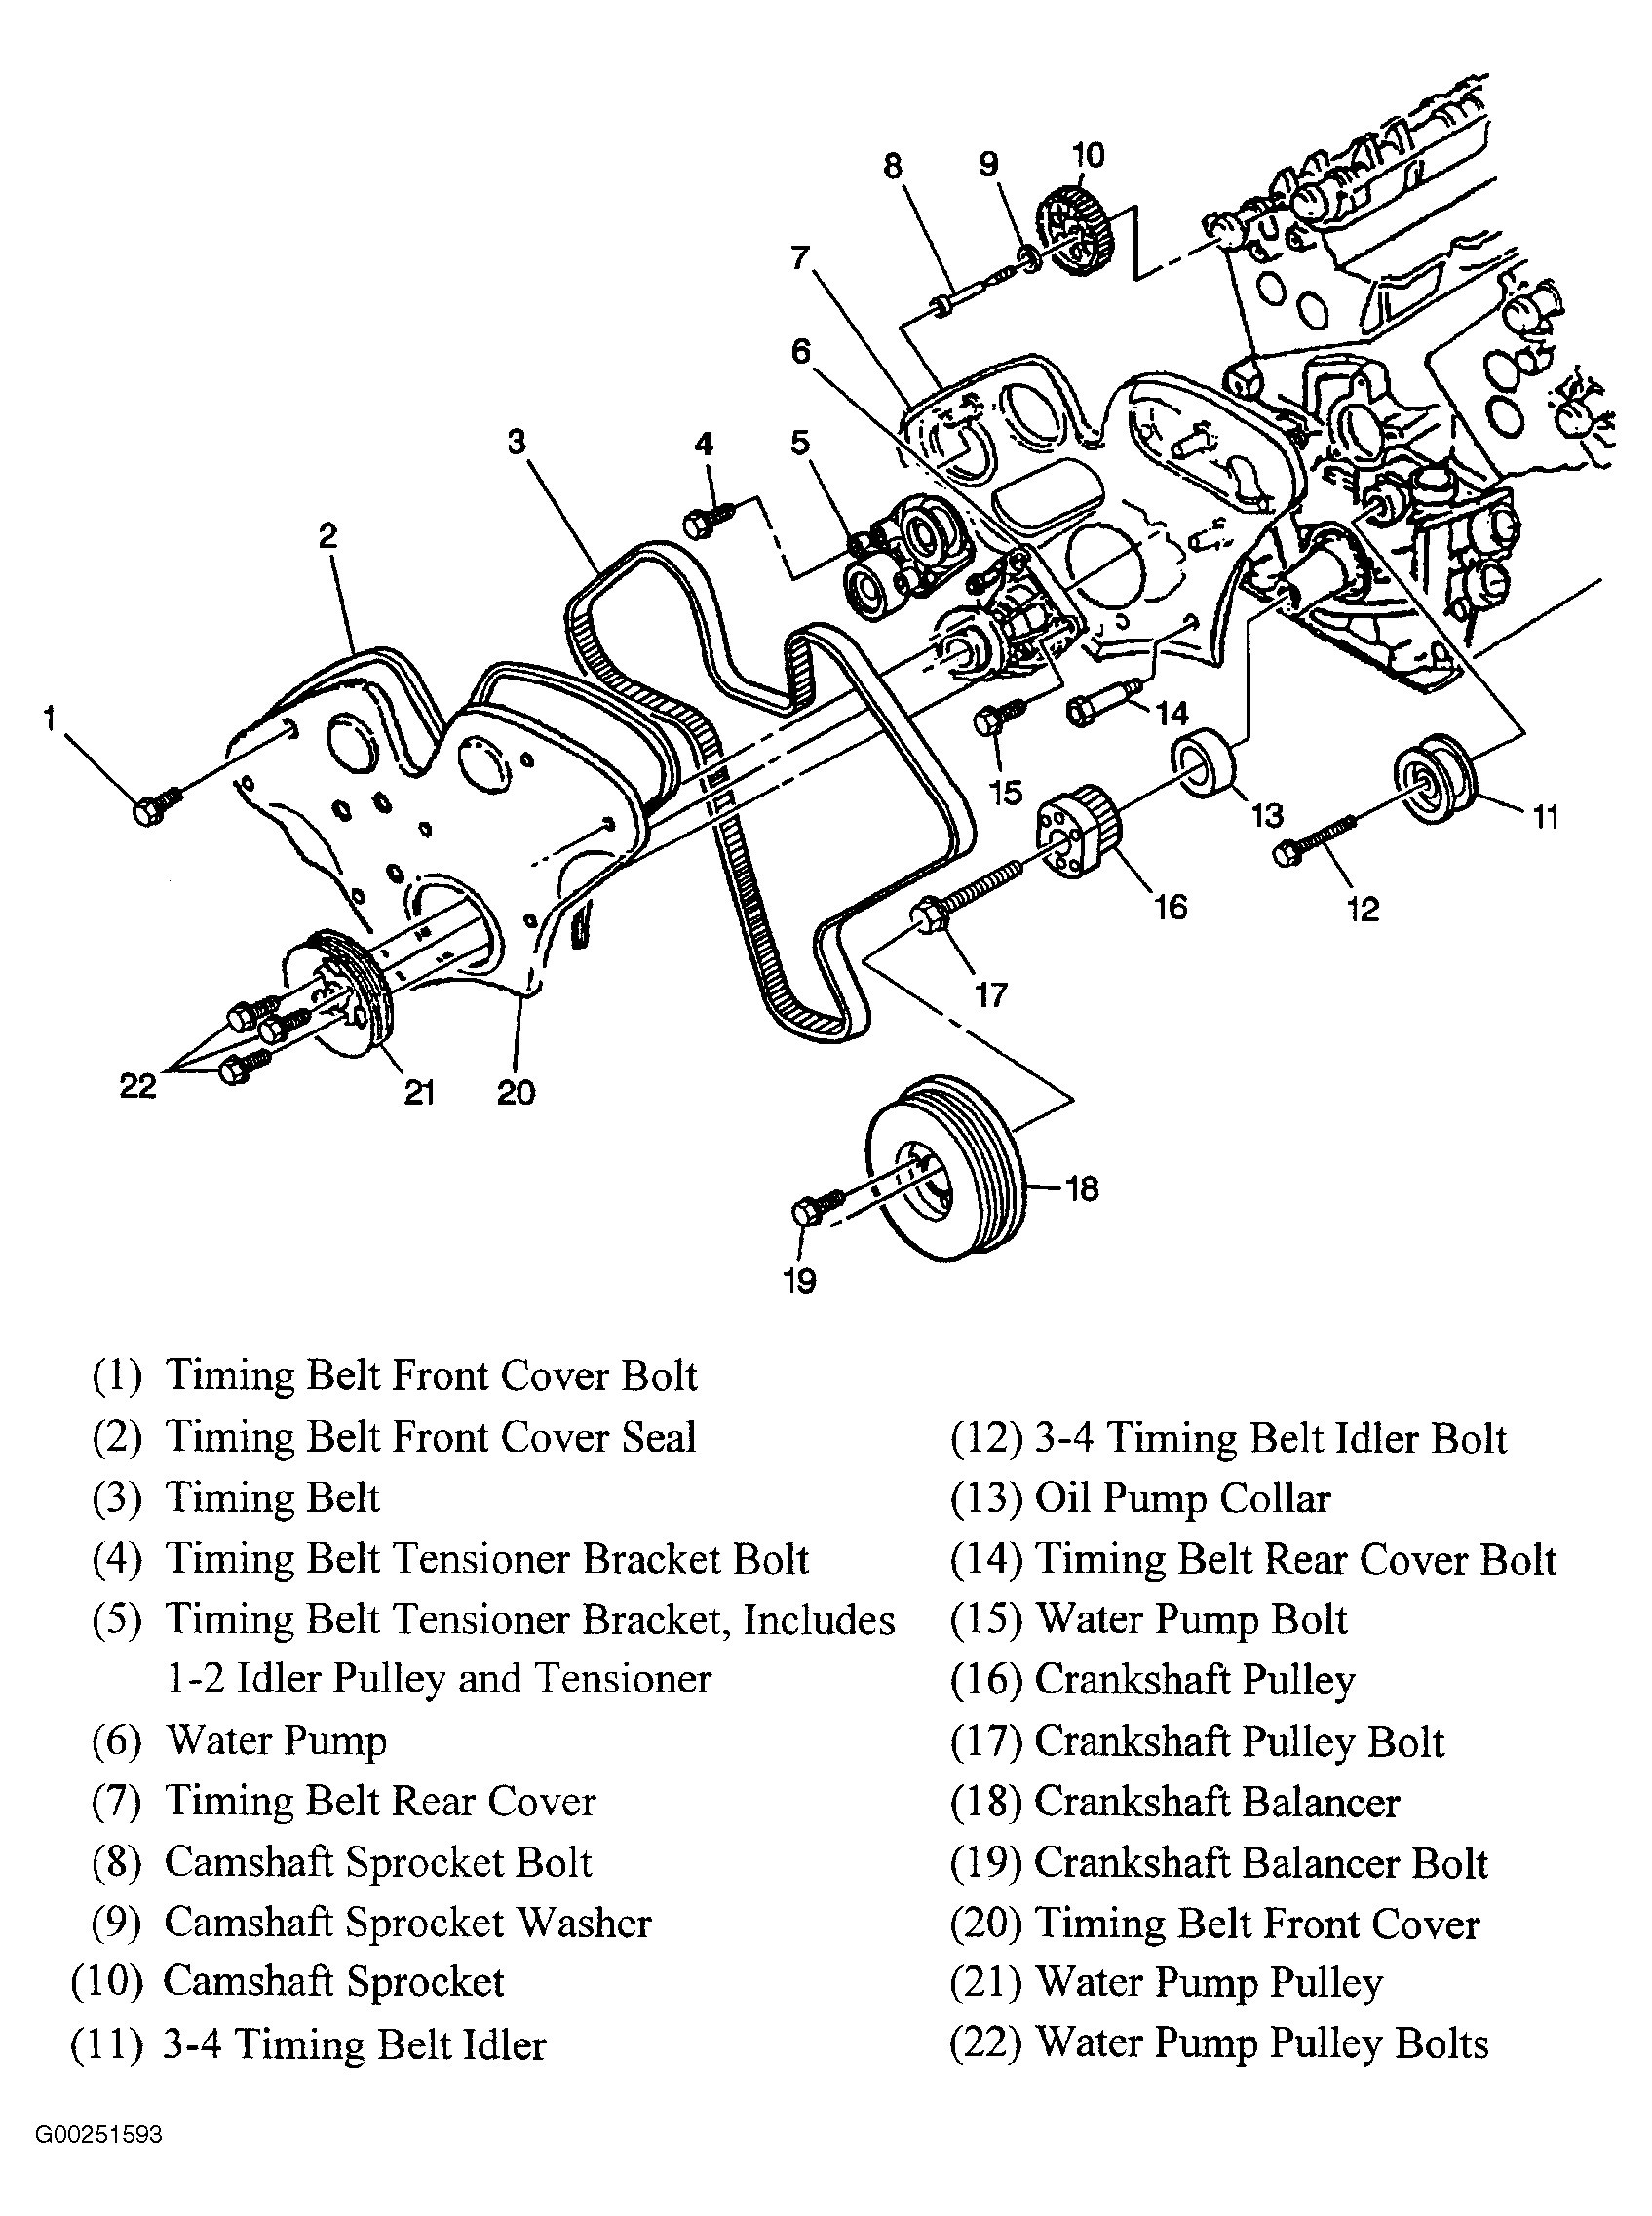 Diagram Of Car Gearbox Hyundai Body Parts Diagram Of Diagram Of Car Gearbox Hyundai Body Parts Diagram